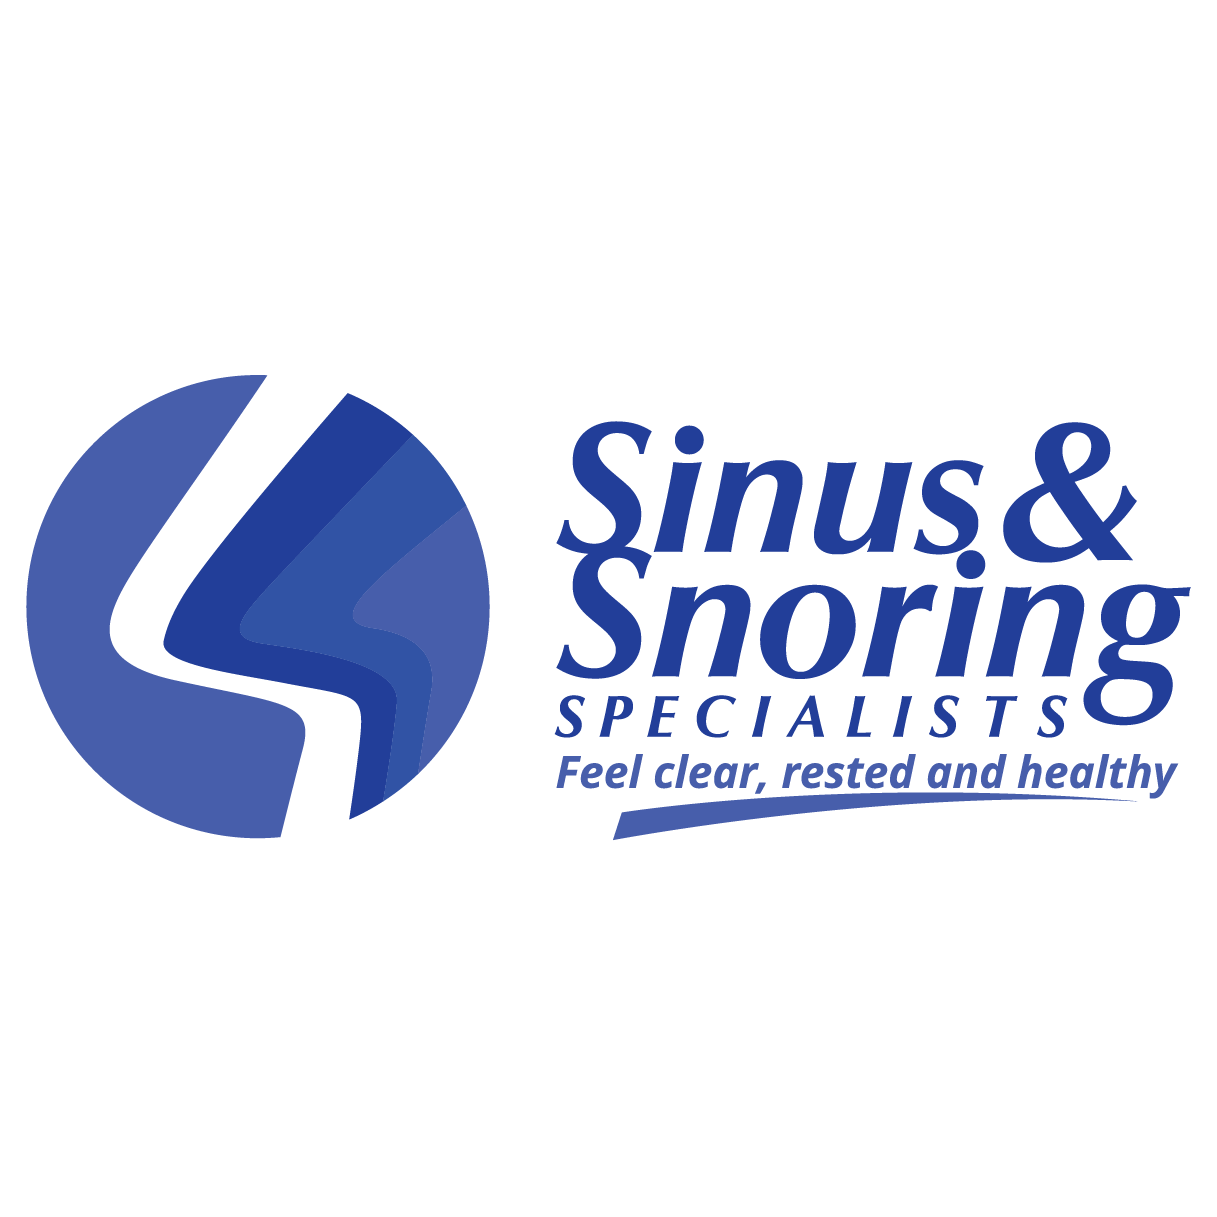 Sinus & Snoring Specialists - Austin, TX - Other Medical Practices